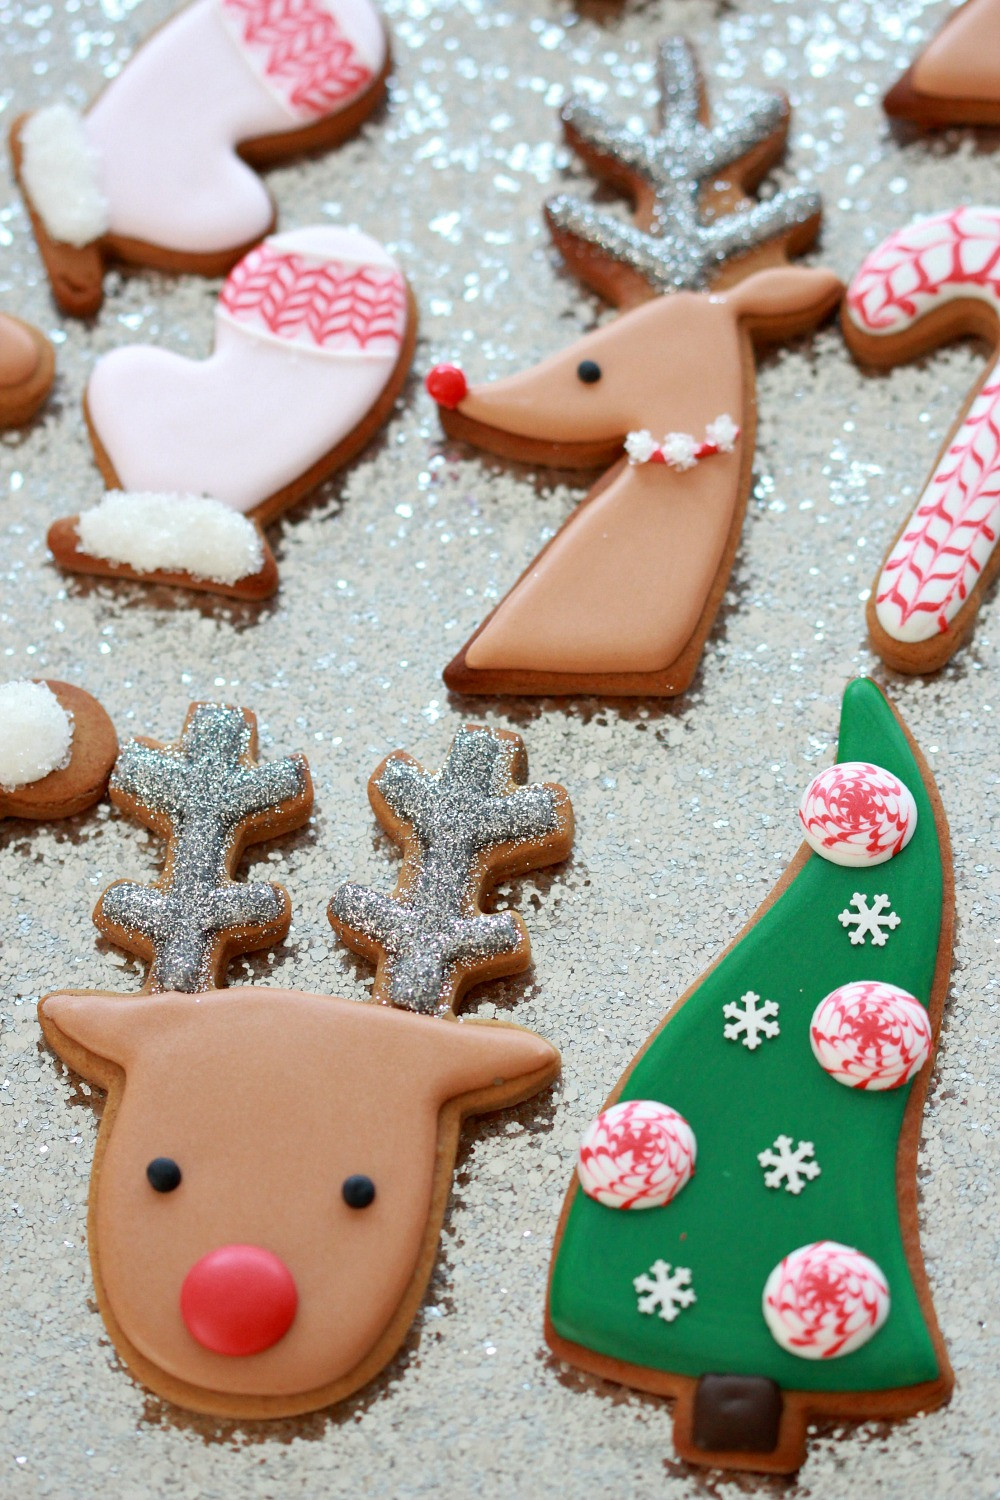 Decorating Christmas Cookies  Video How to Decorate Christmas Cookies Simple Designs